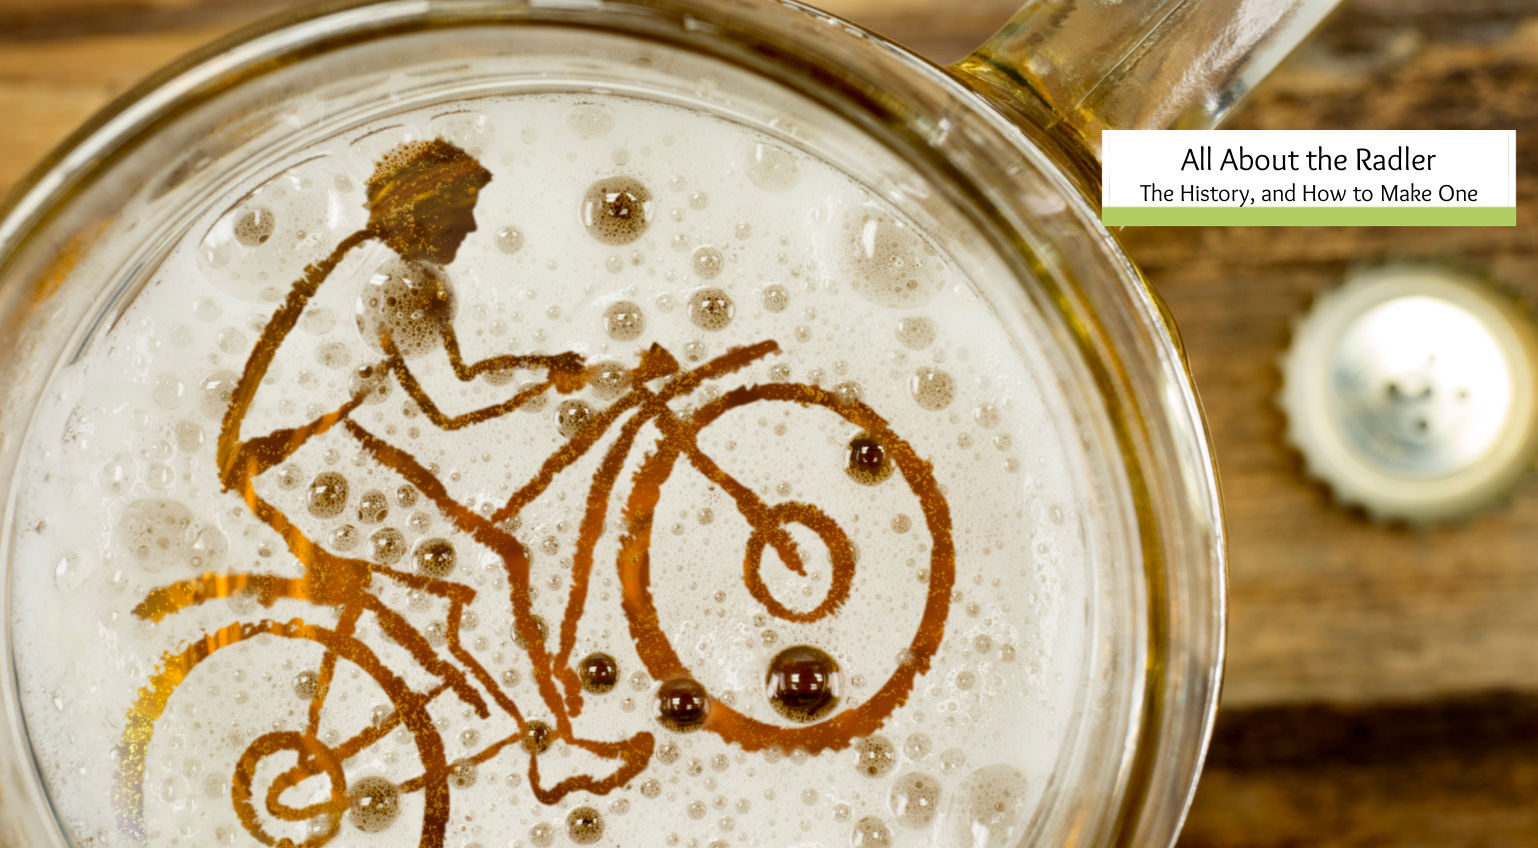 What is a Radler- The History of a Drink Named for a Cyclist